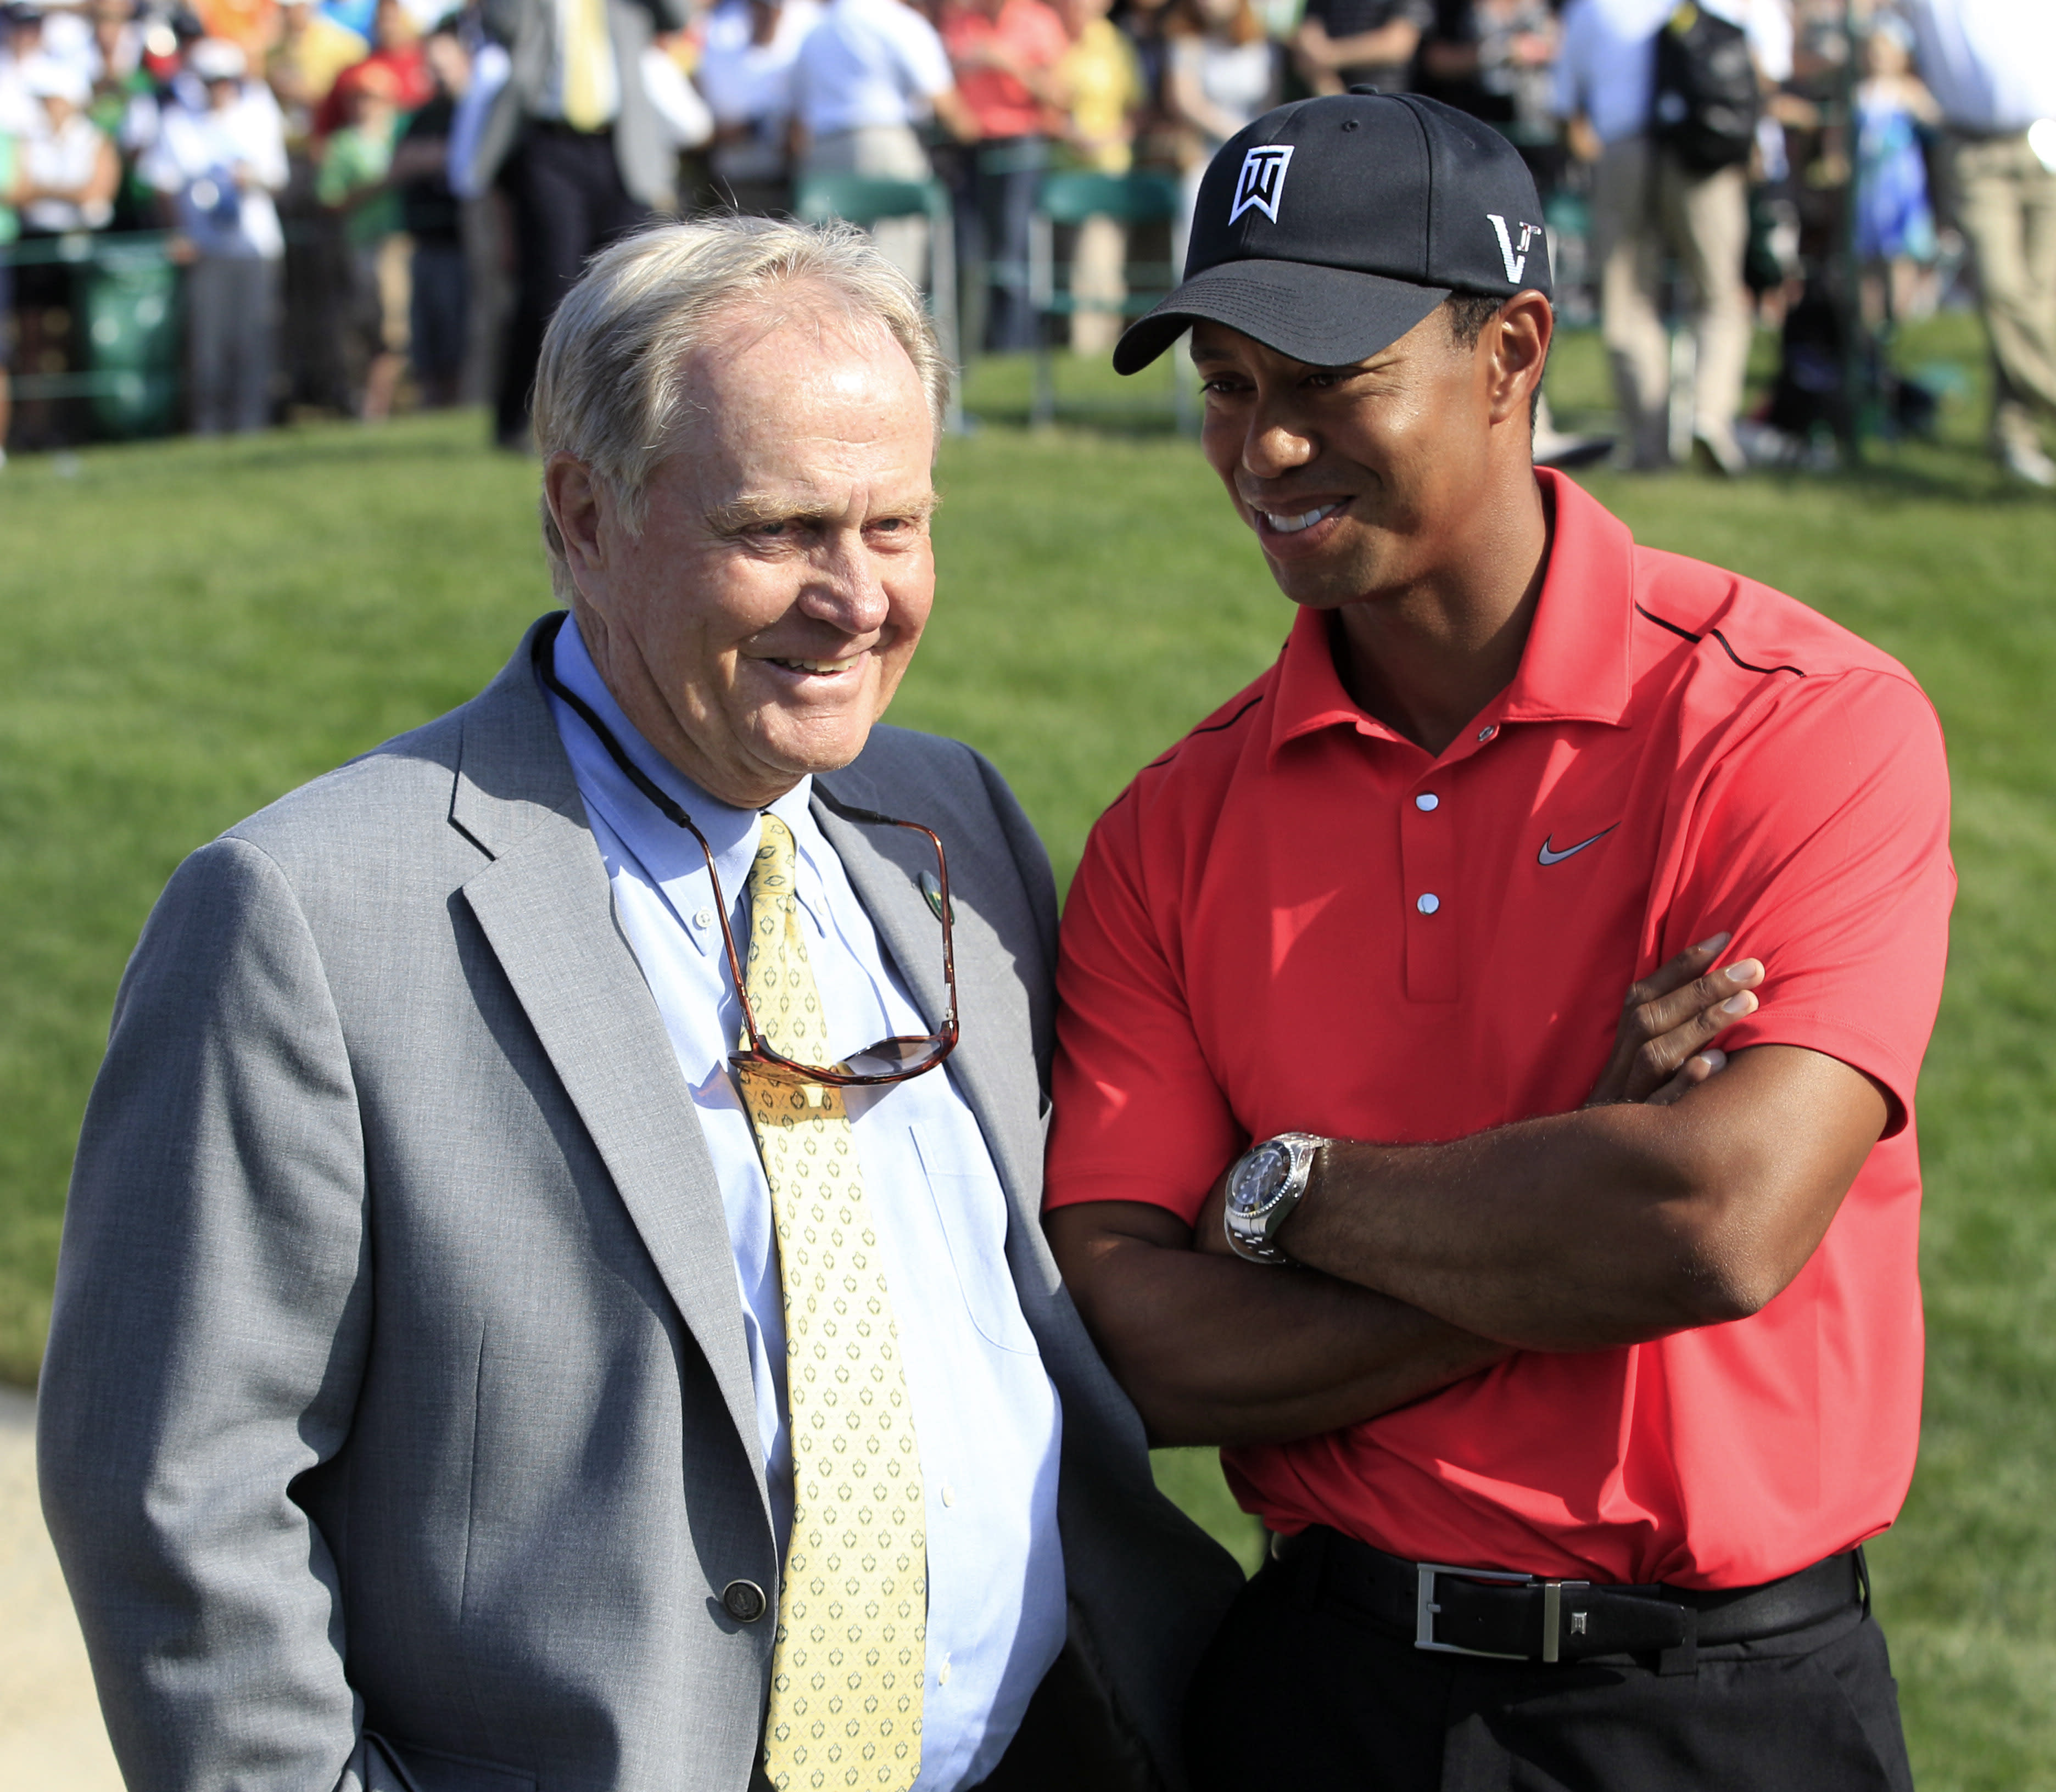 Nicklaus: Tiger Woods told me he's in for the Memorial